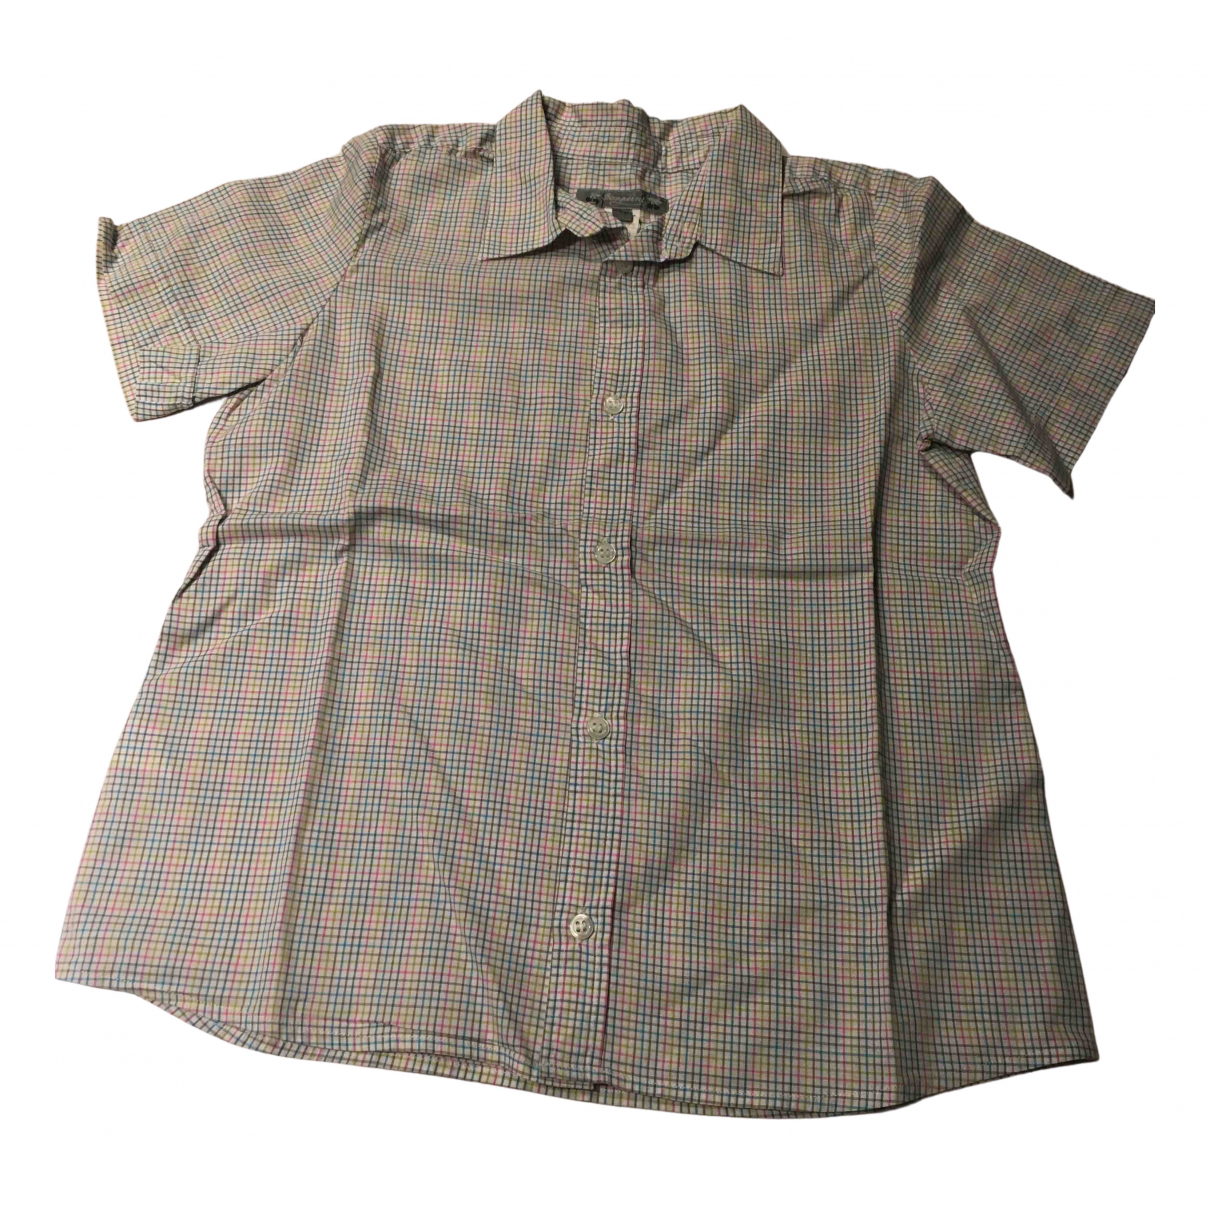 Bonpoint N Multicolour Cotton  top for Kids 10 years - up to 142cm FR